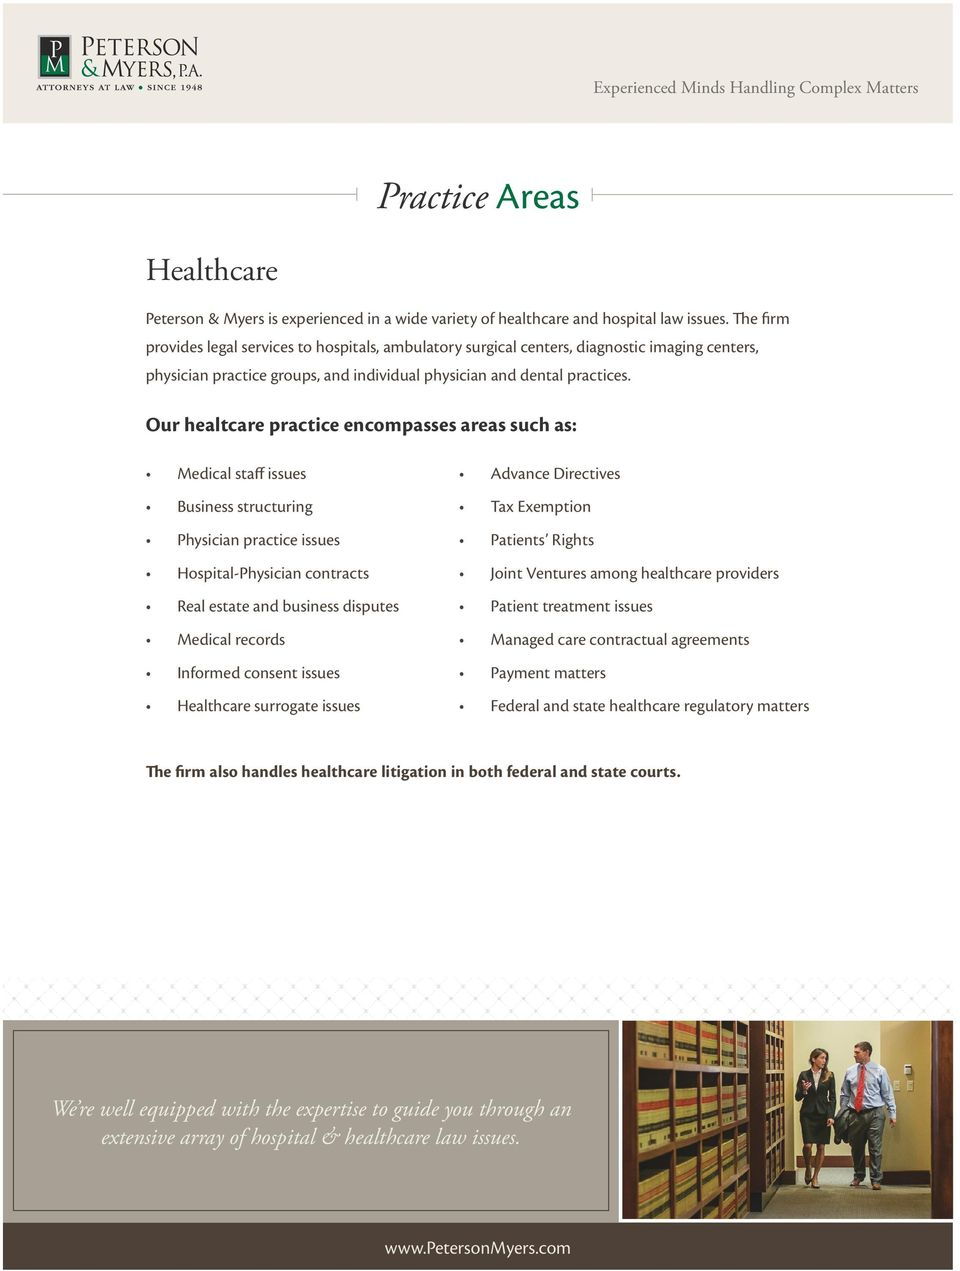 Our healtcare practice encompasses areas such as: Medical staff issues Business structuring Physician practice issues Hospital-Physician contracts Real estate and business disputes Medical records